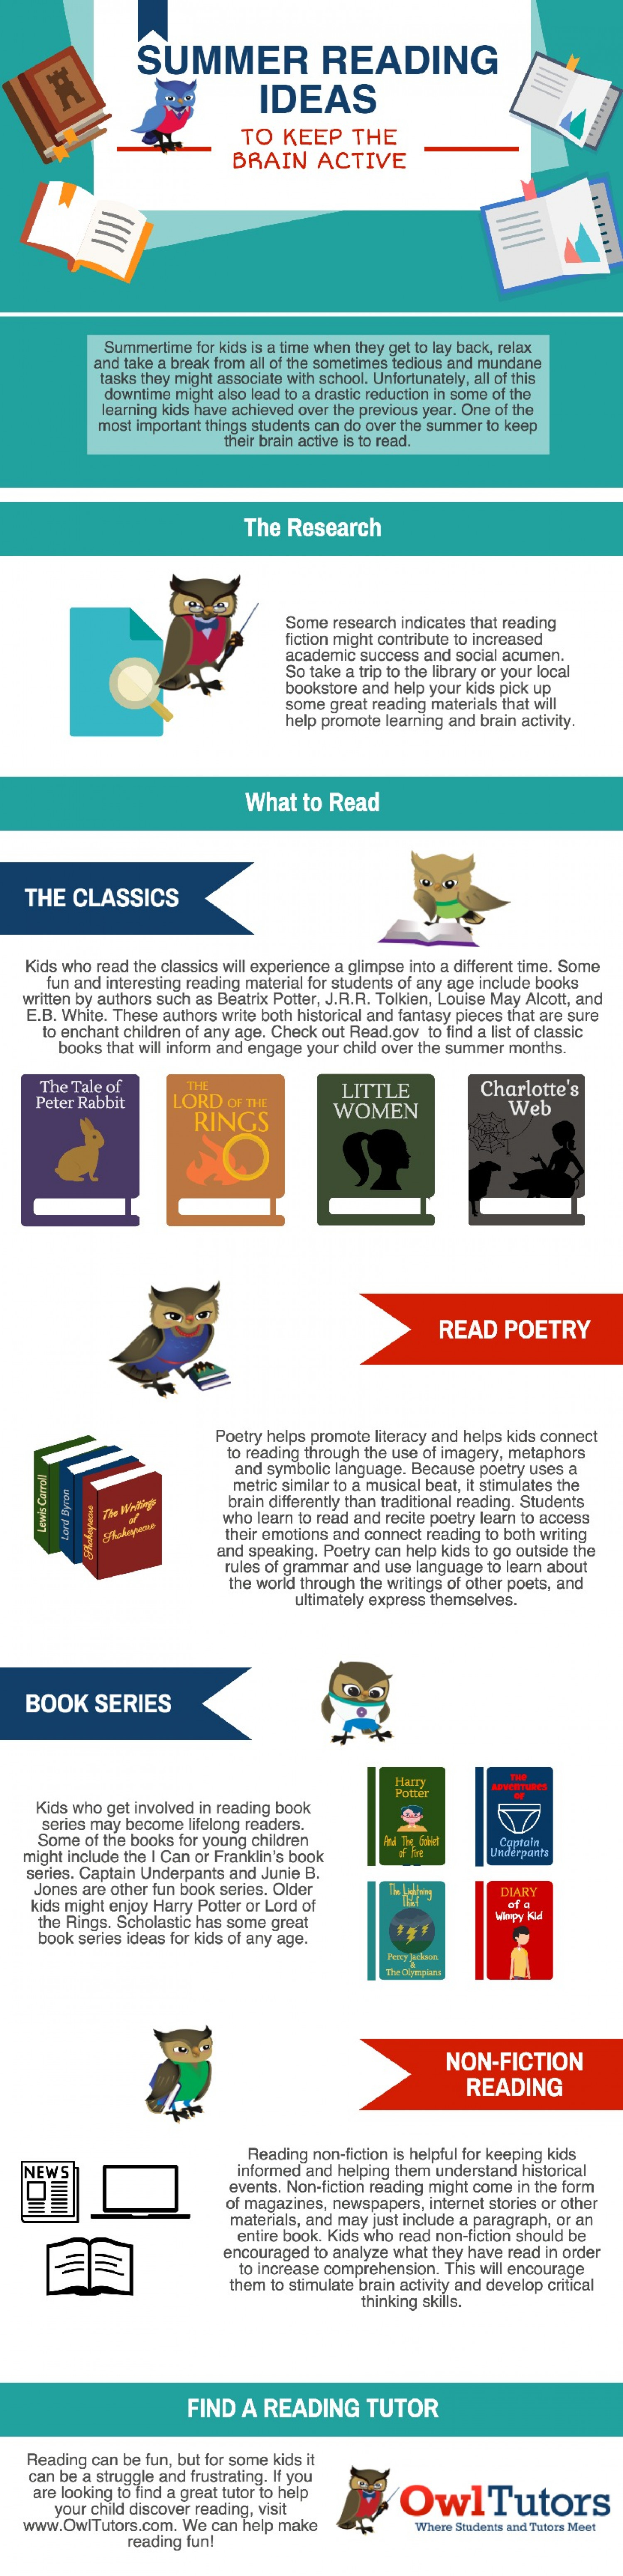 Summer Reading Ideas to Keep the Brain Active Infographic